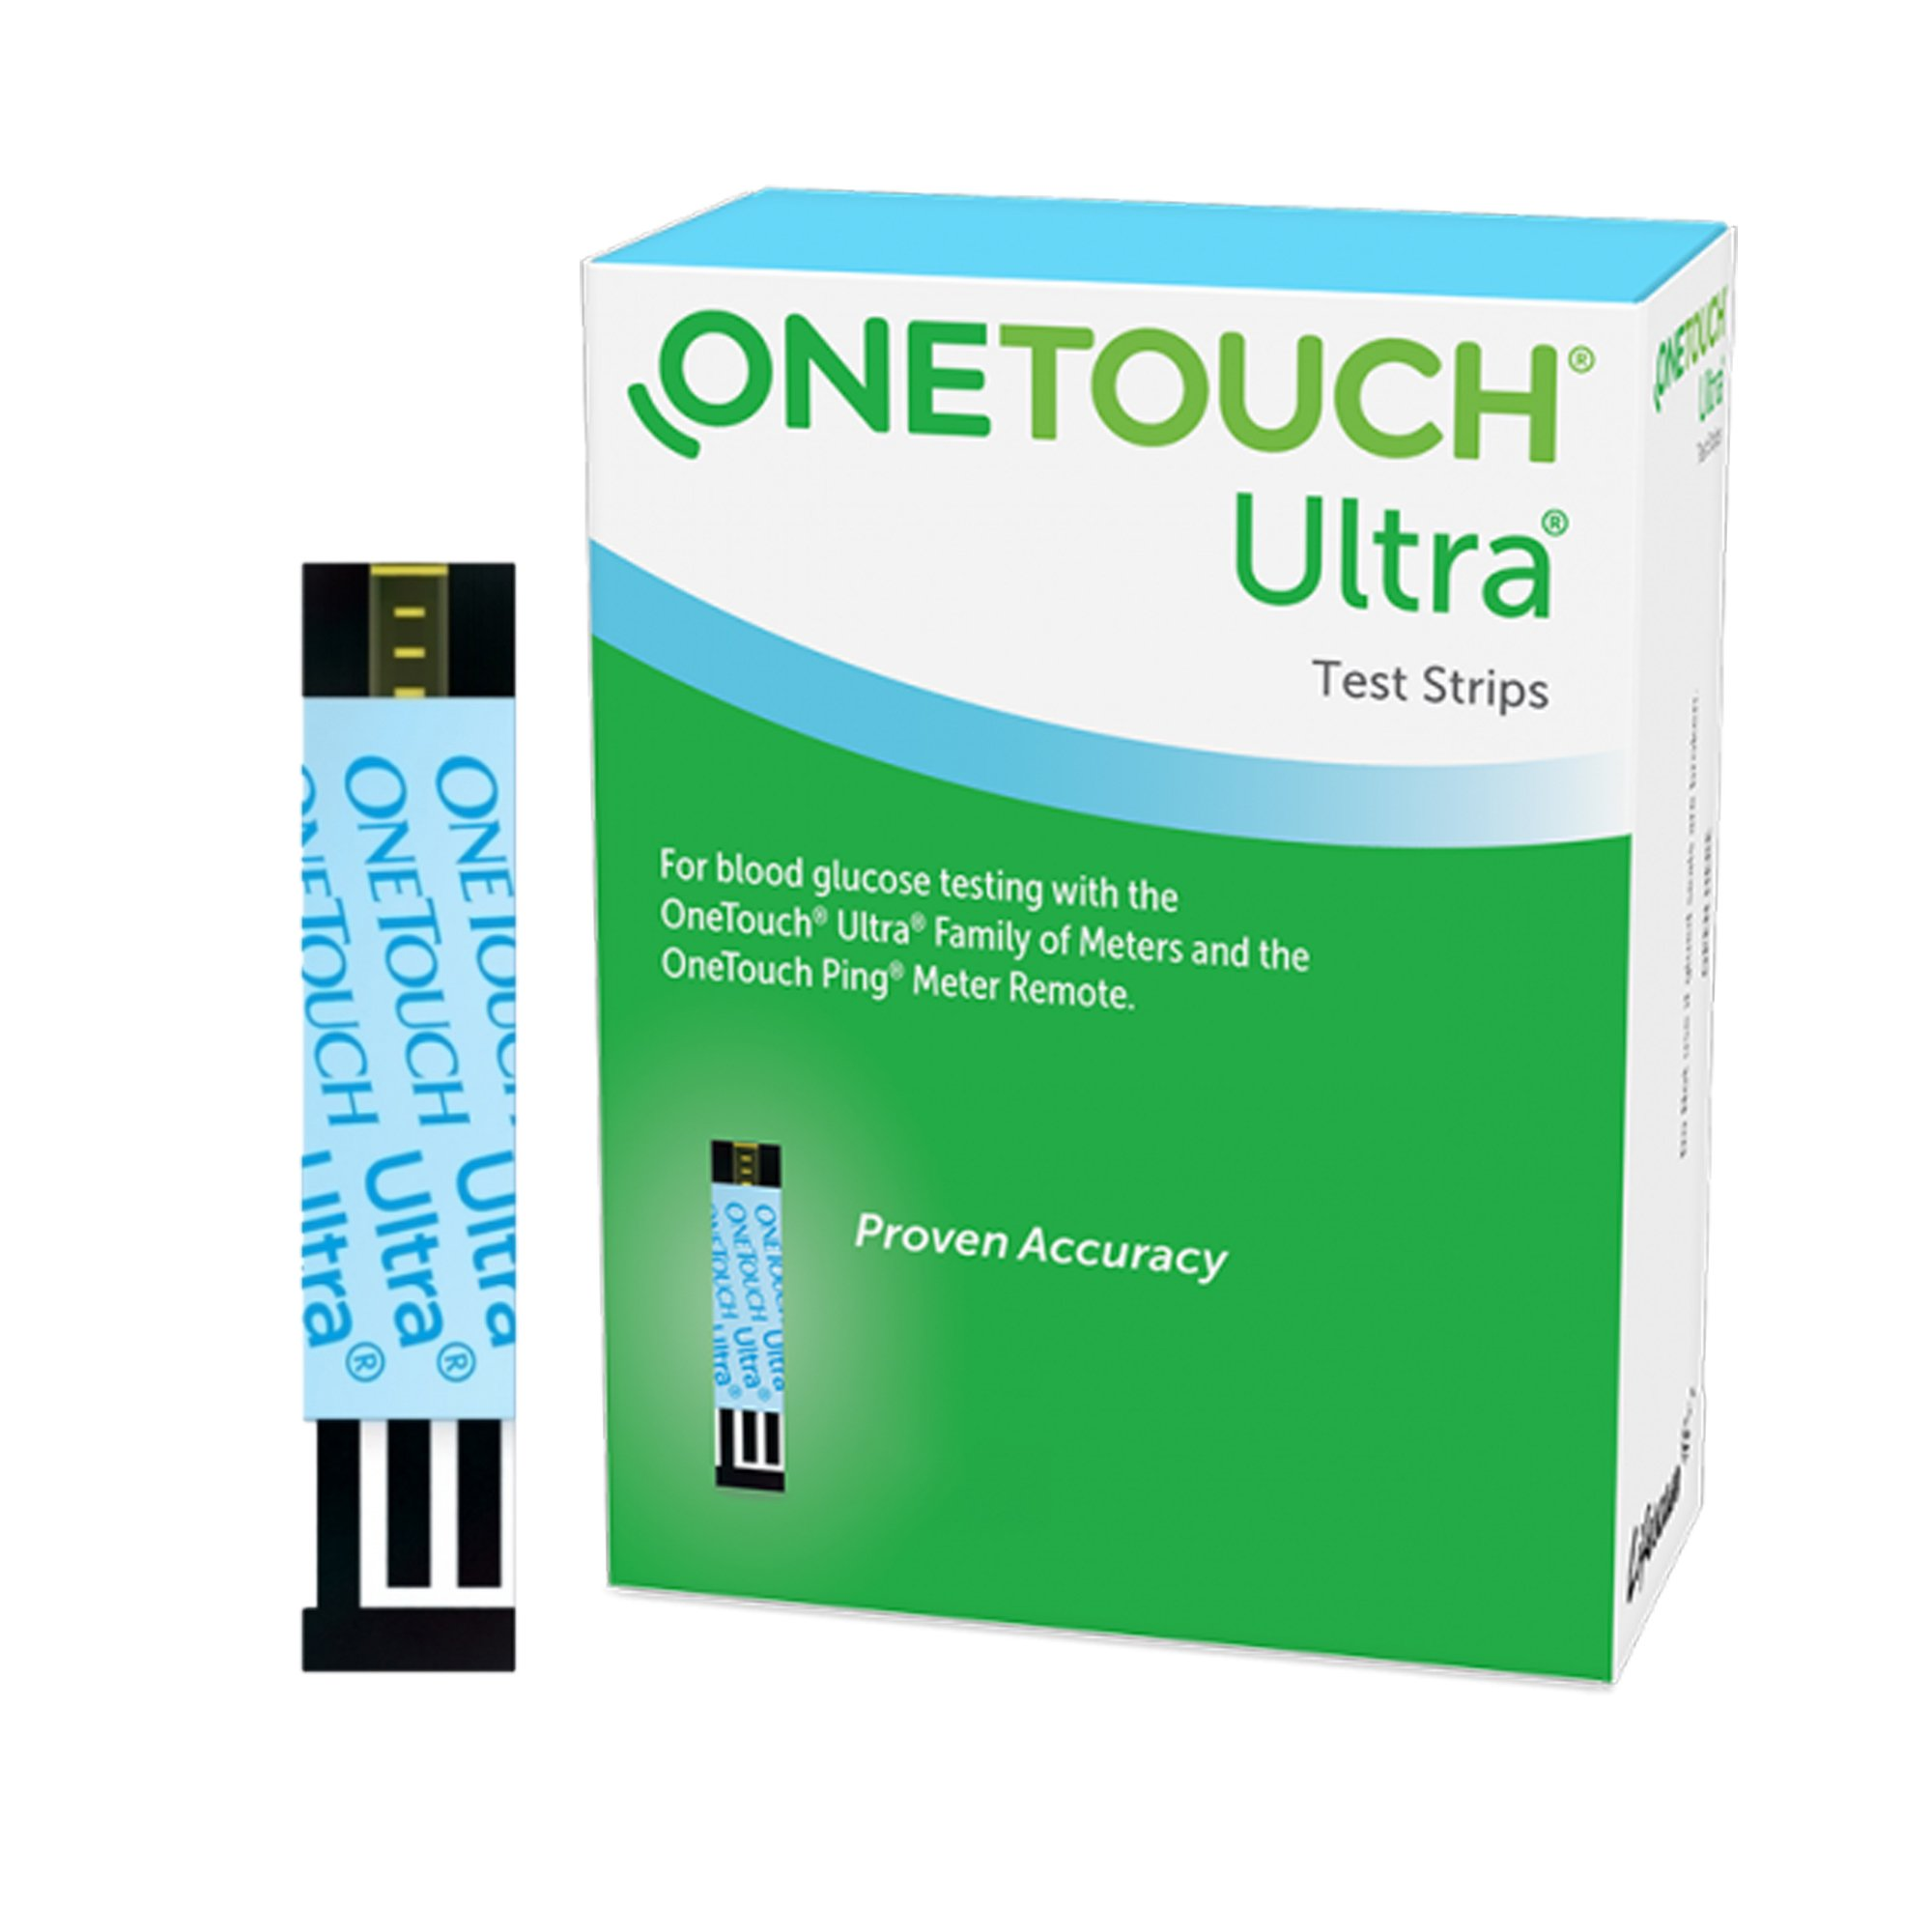 OneTouch Ultra Test Strips, 20994, Box of 25 Strips